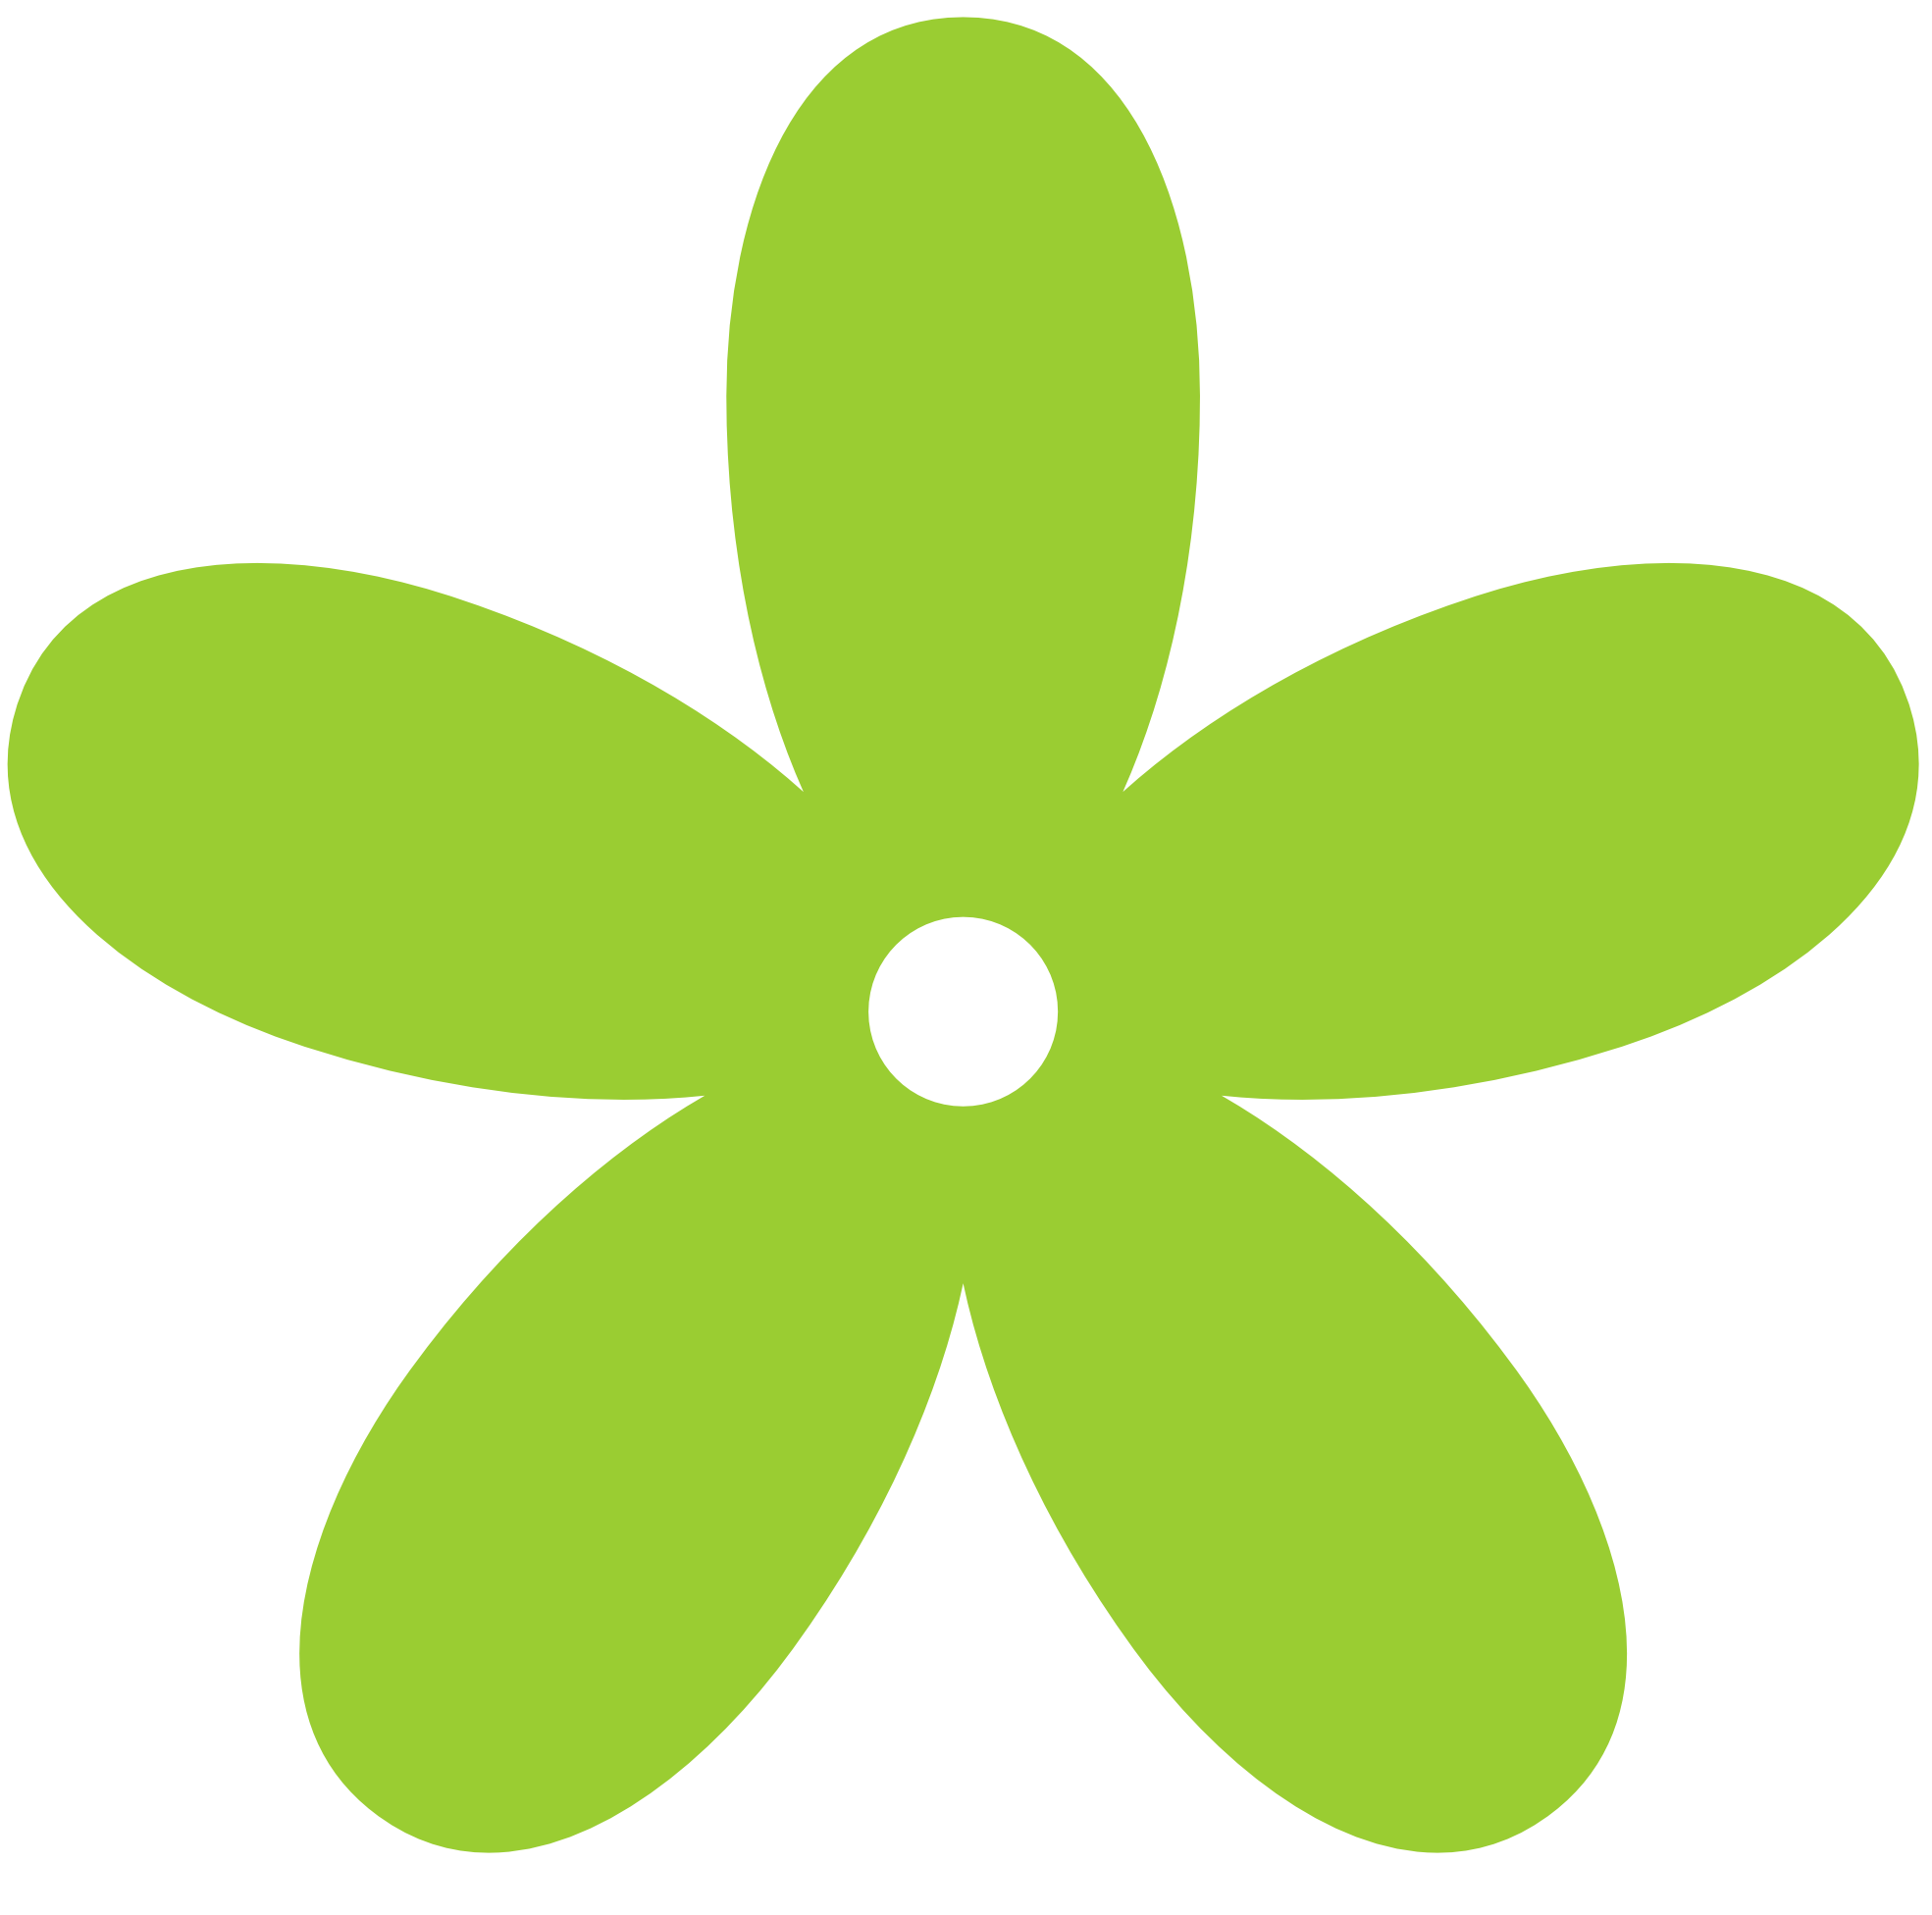 Free Green Floral Cliparts, Download Free Clip Art, Free.